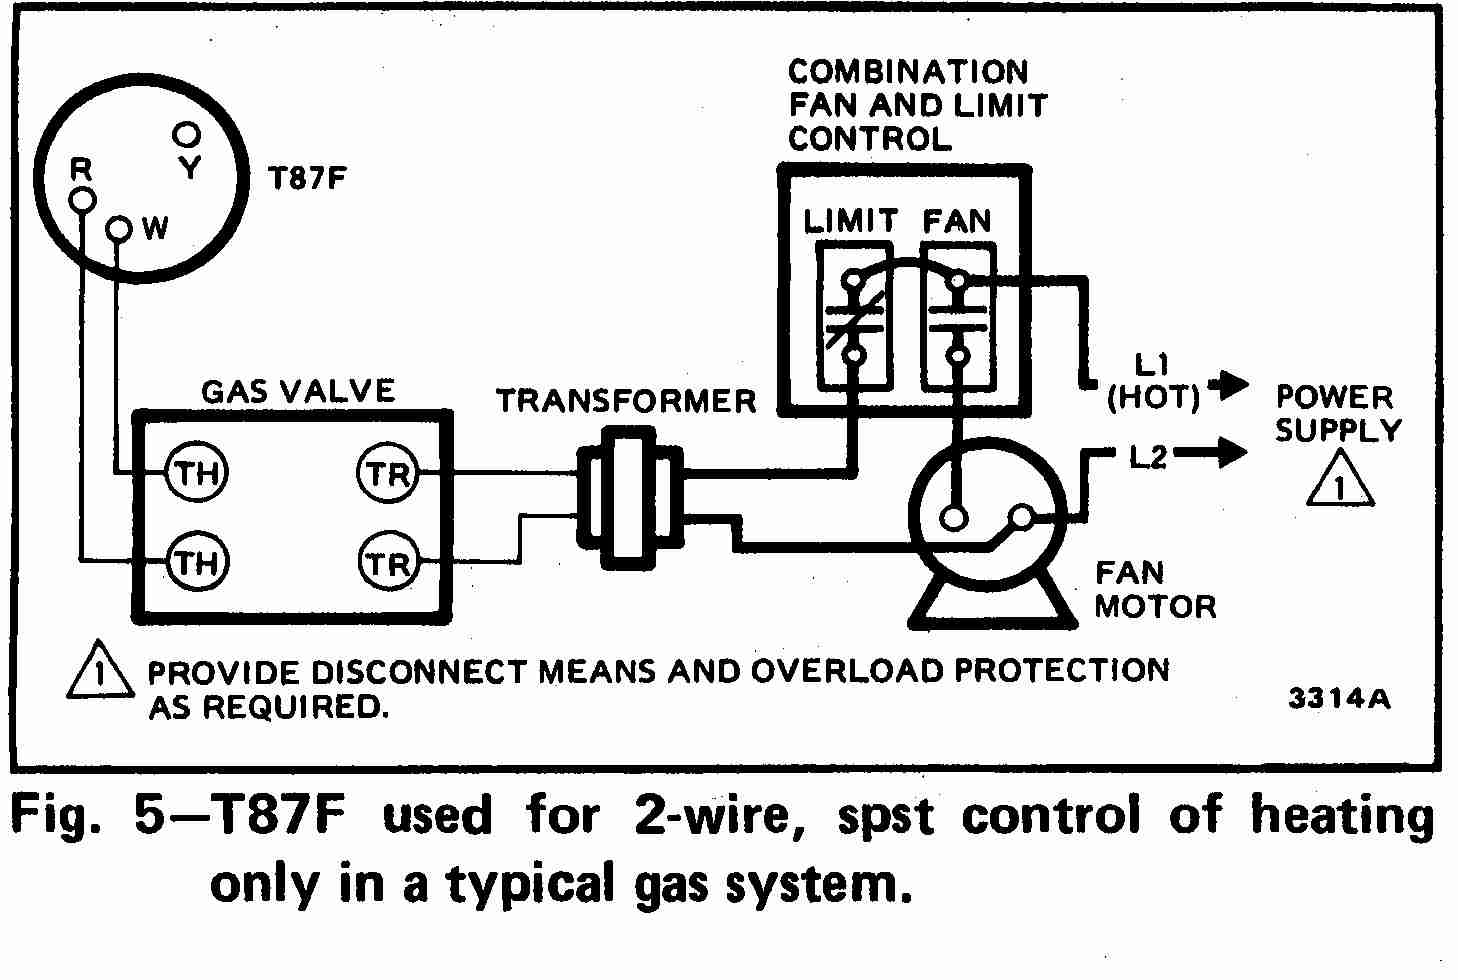 TT_T87F_0002_2Wg_DJF room thermostat wiring diagrams for hvac systems imit boiler thermostat wiring diagram at fashall.co